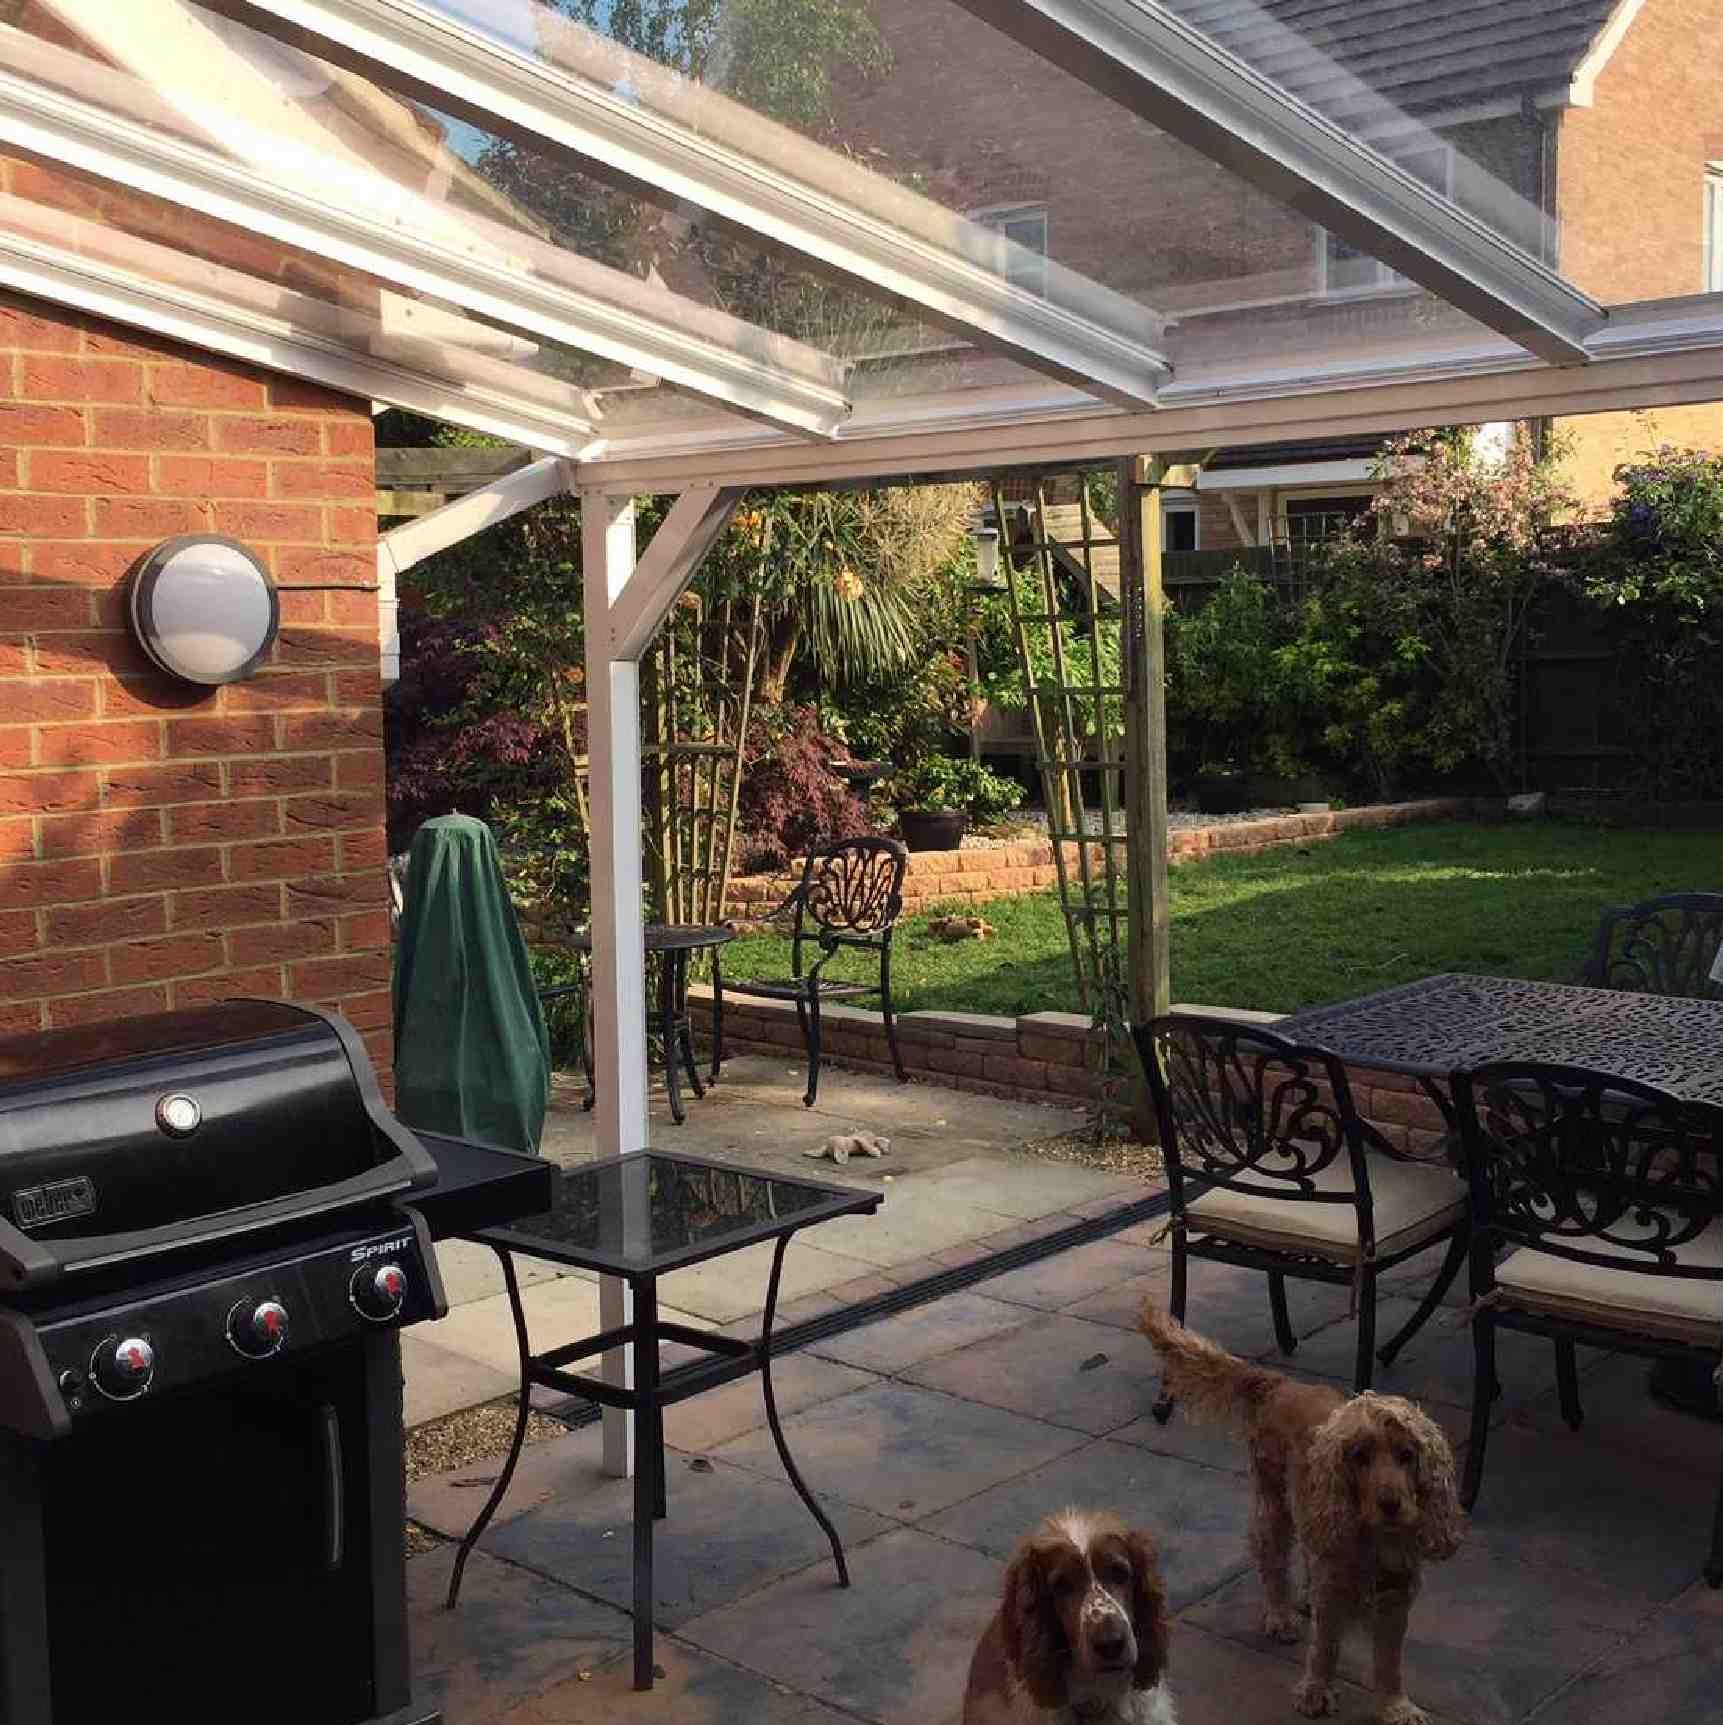 Omega Verandah with 16mm Polycarbonate Glazing - 8.4m (W) x 2.0m (P), (4) Supporting Posts